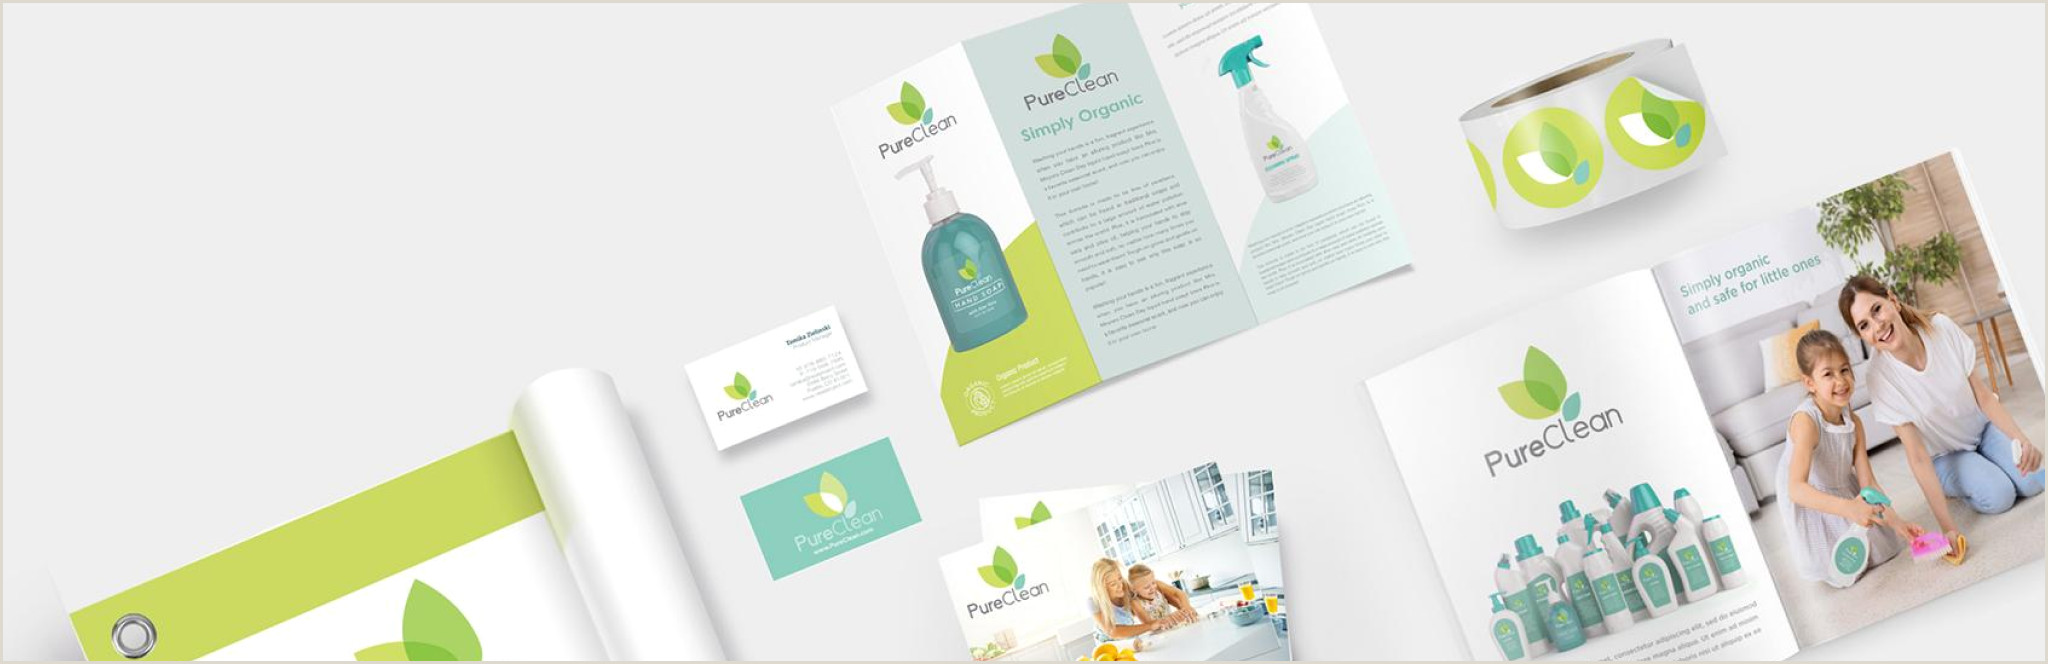 Thank You For Your Business Cards Printplace High Quality Line Printing Services